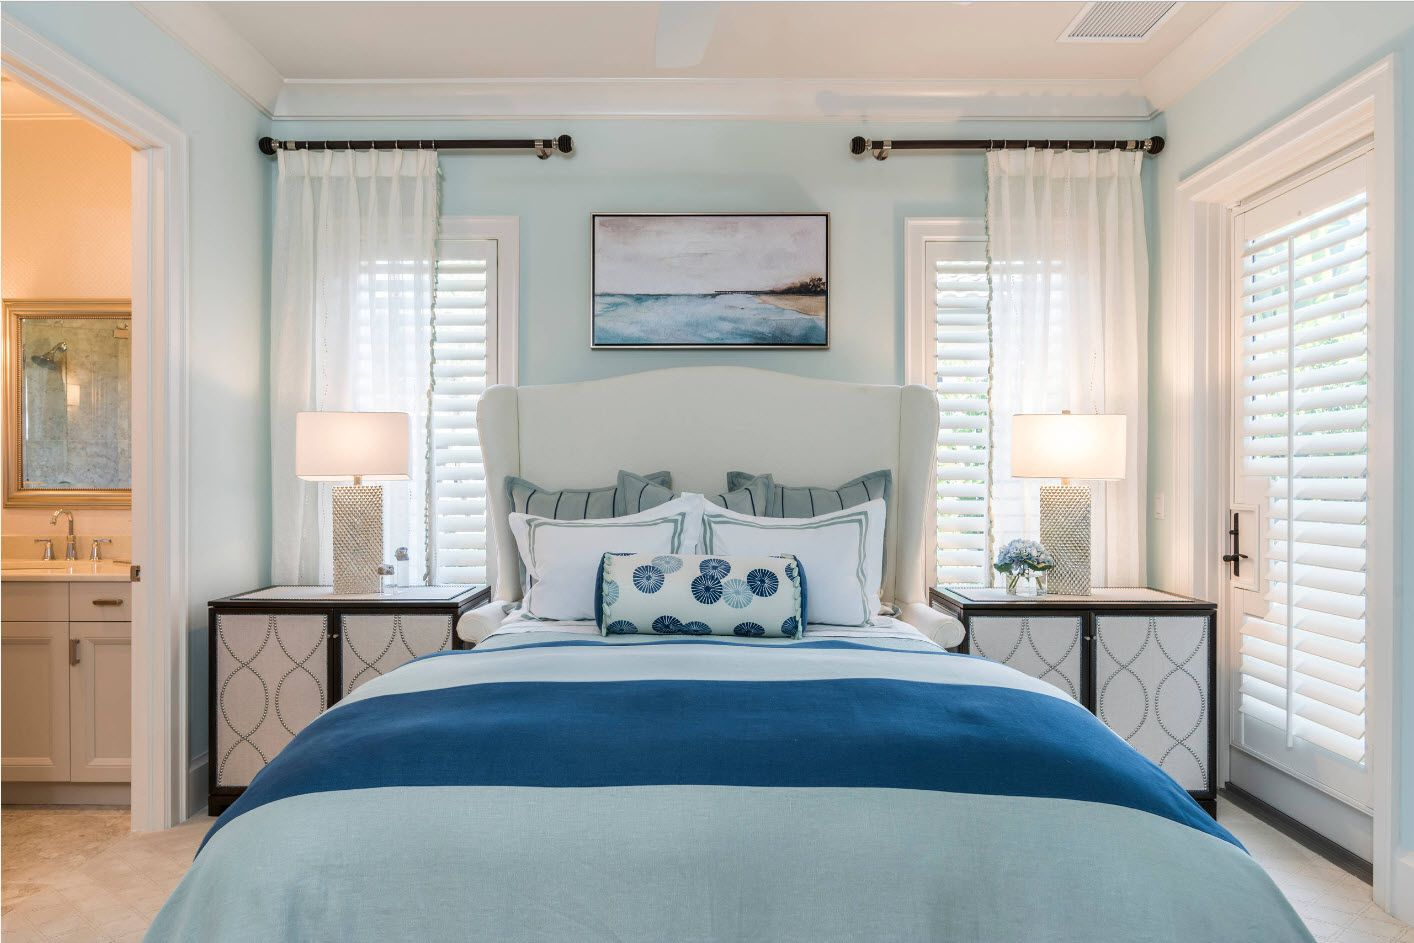 Marine style in the cottage bedroom with translucent tulle at the windows